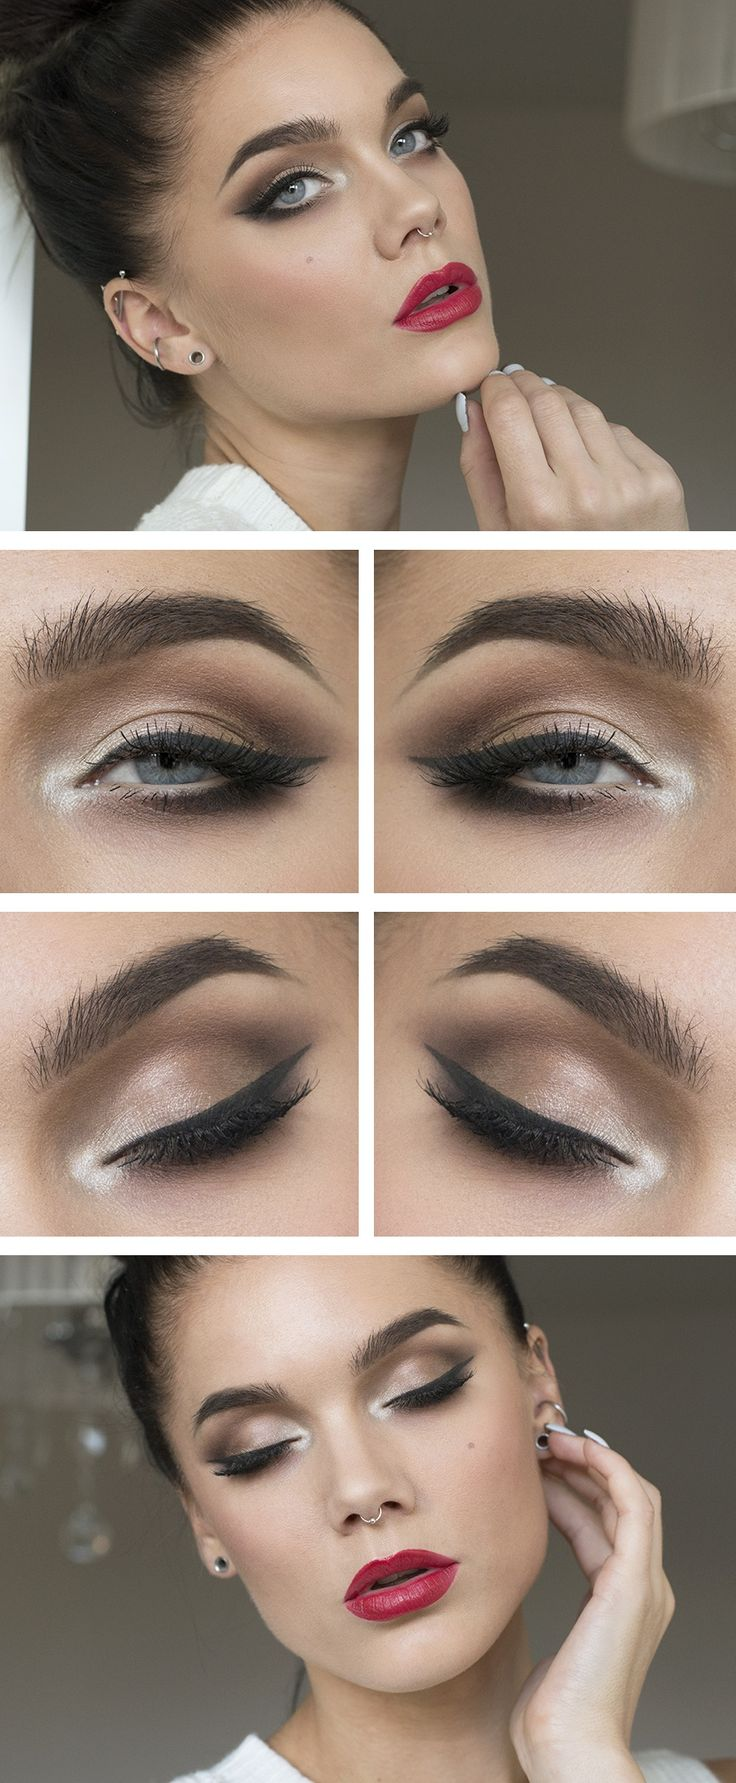 Best makeup tutorials here http://pinmakeuptips.com/simple-trick-with-a-business-card/ - Find The Top Beauty and Cosmetics Stores Online via http://AmericasMall.com/categories/beauty-cosmetics.html Pin Now, Use Later